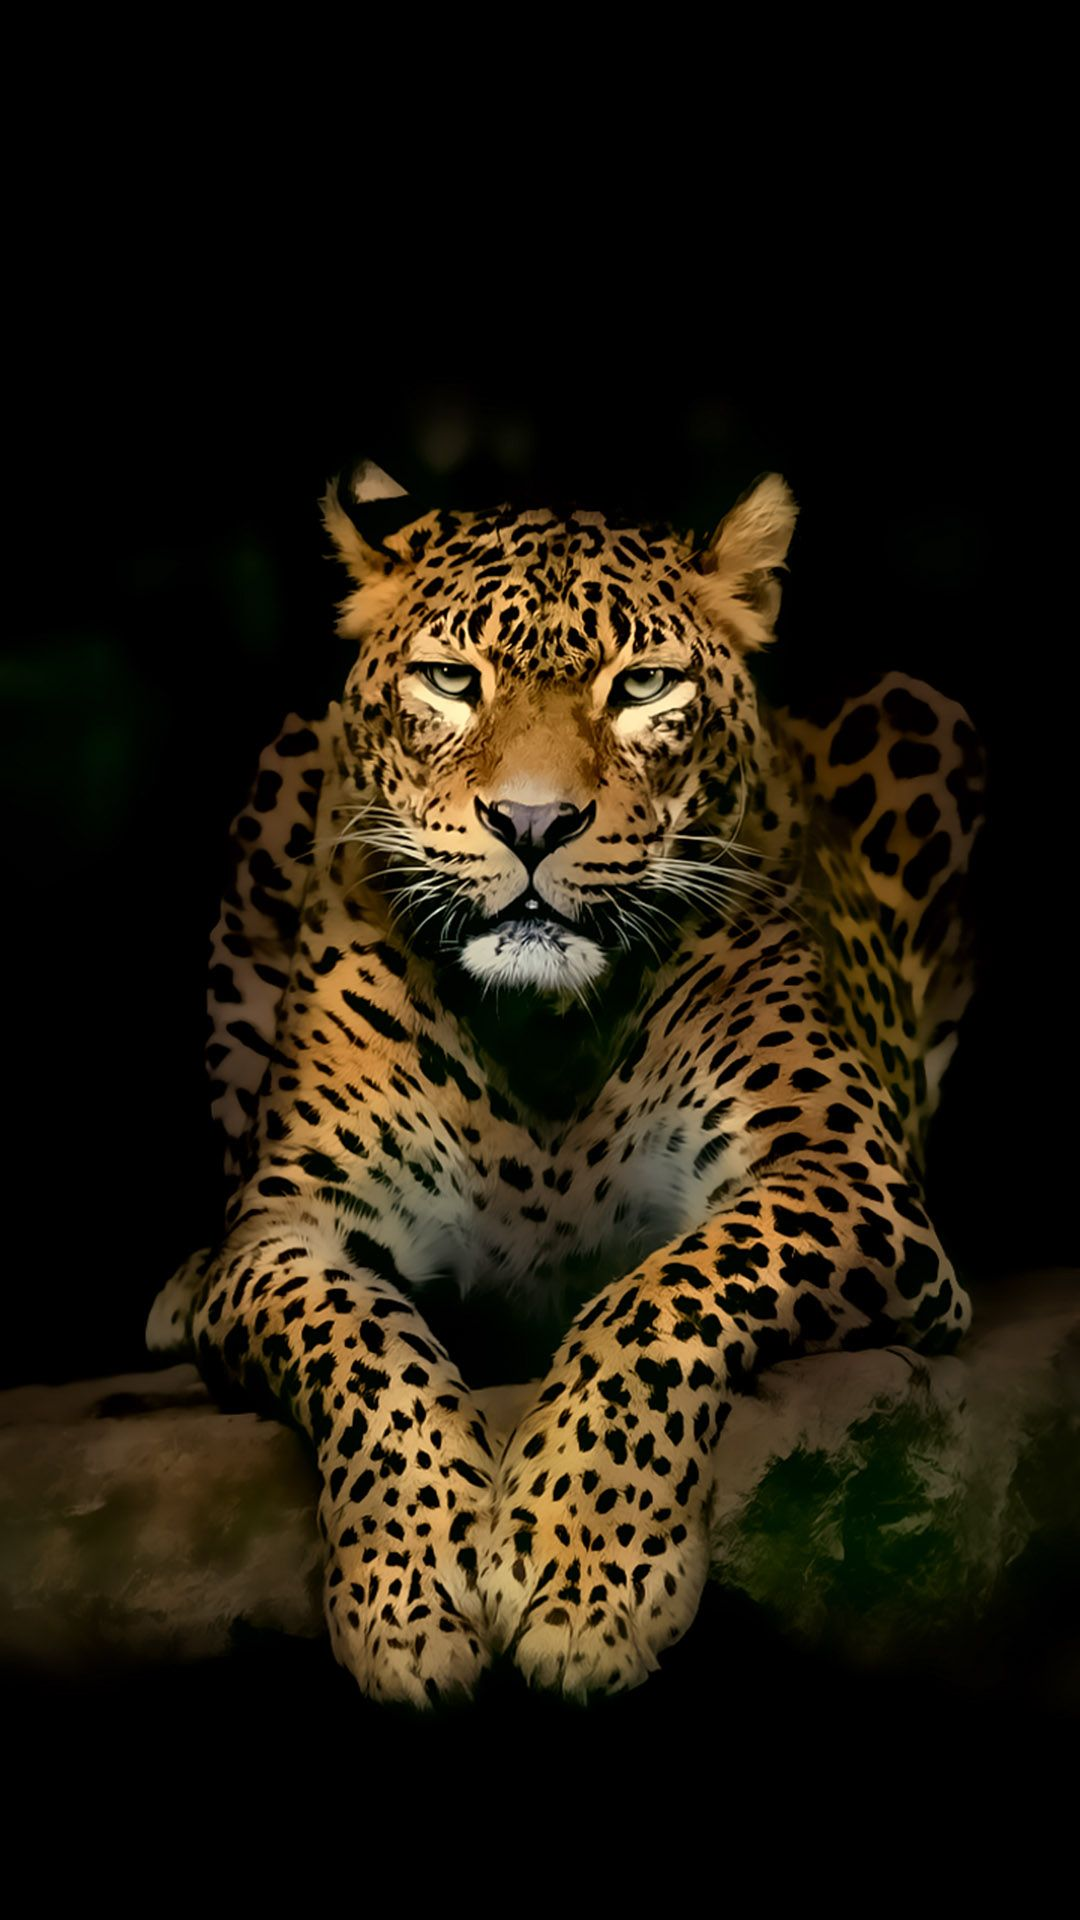 Serious Leopard 3d Spots Illustration Wild Animal Android